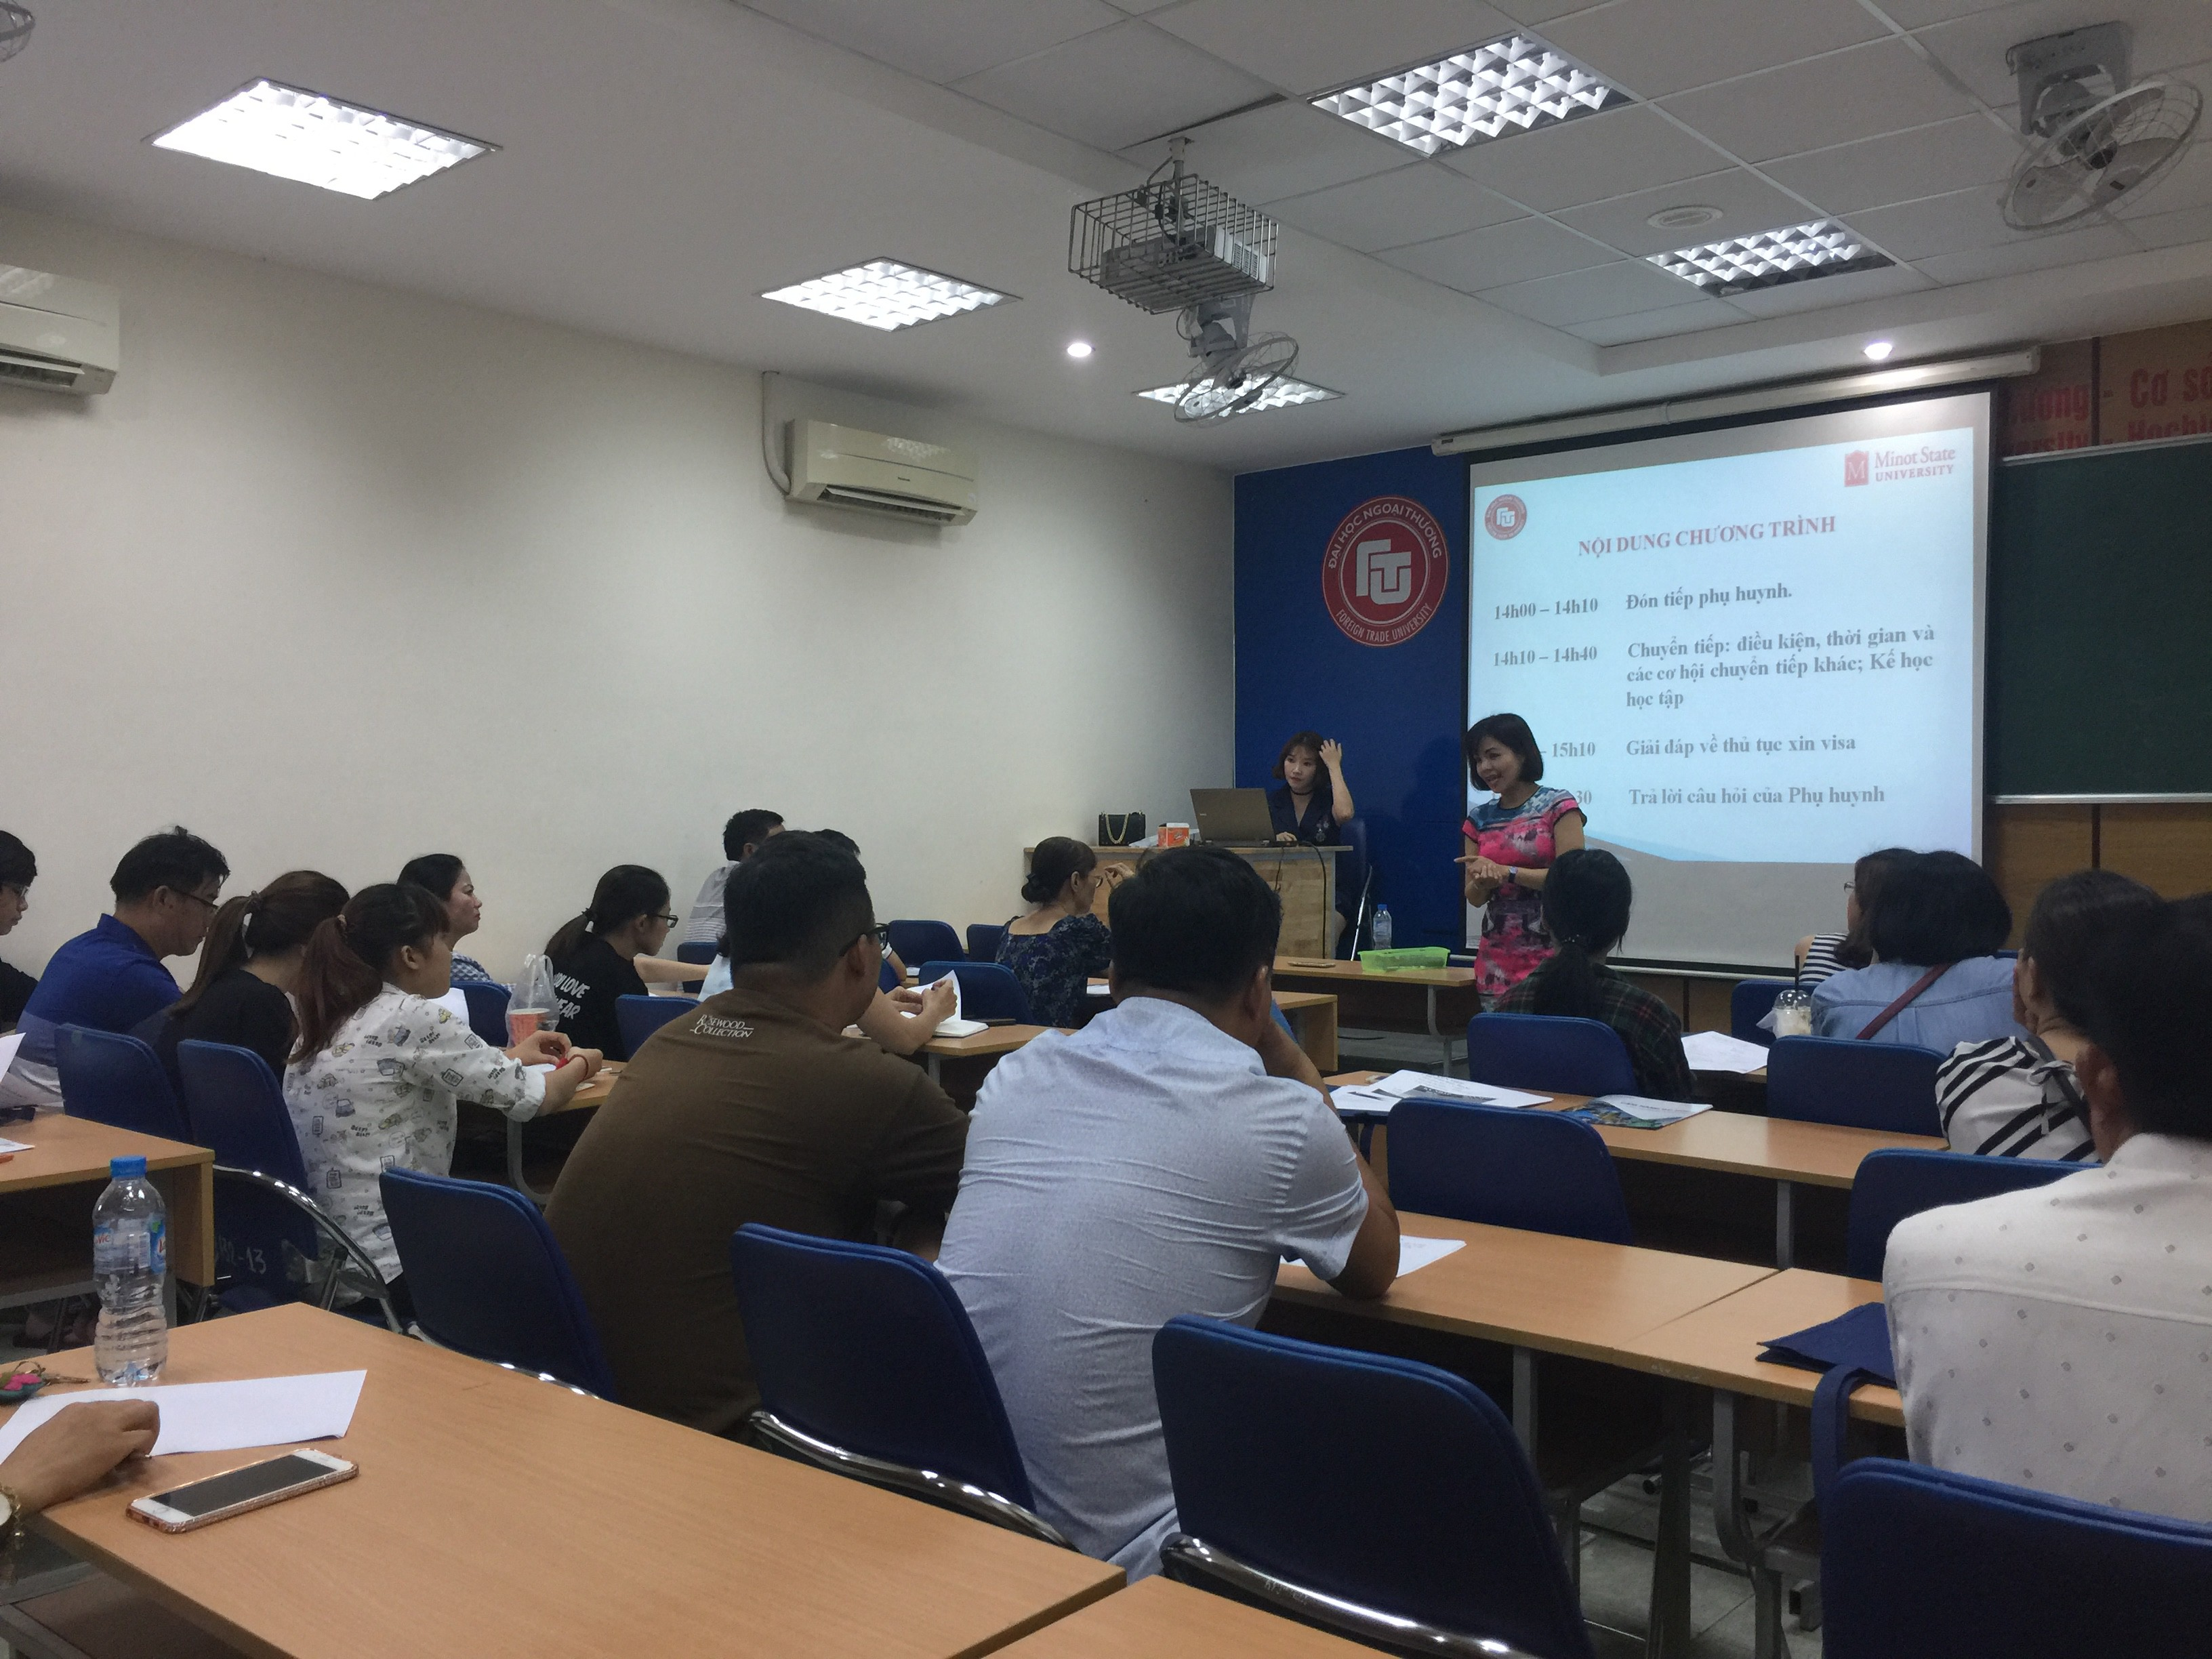 Hanoi Campus and Ho Chi Minh Campus of Foreign Trade University closely connected in running joint training programs